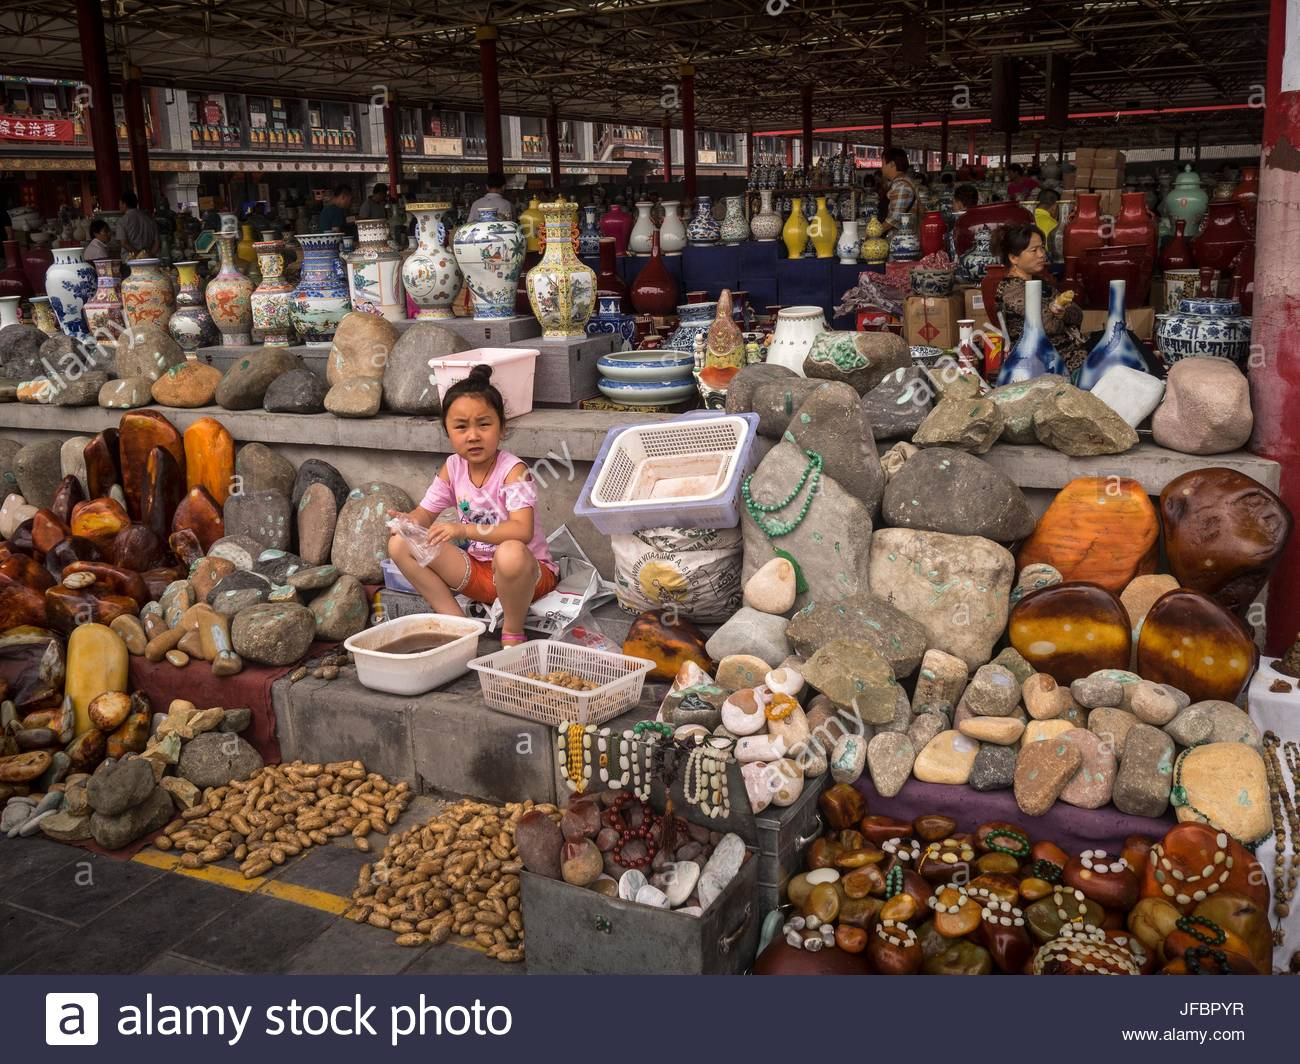 A young girl sits outside a ceramics and jewelry shop at the Panjiayuan Market. - Stock Image